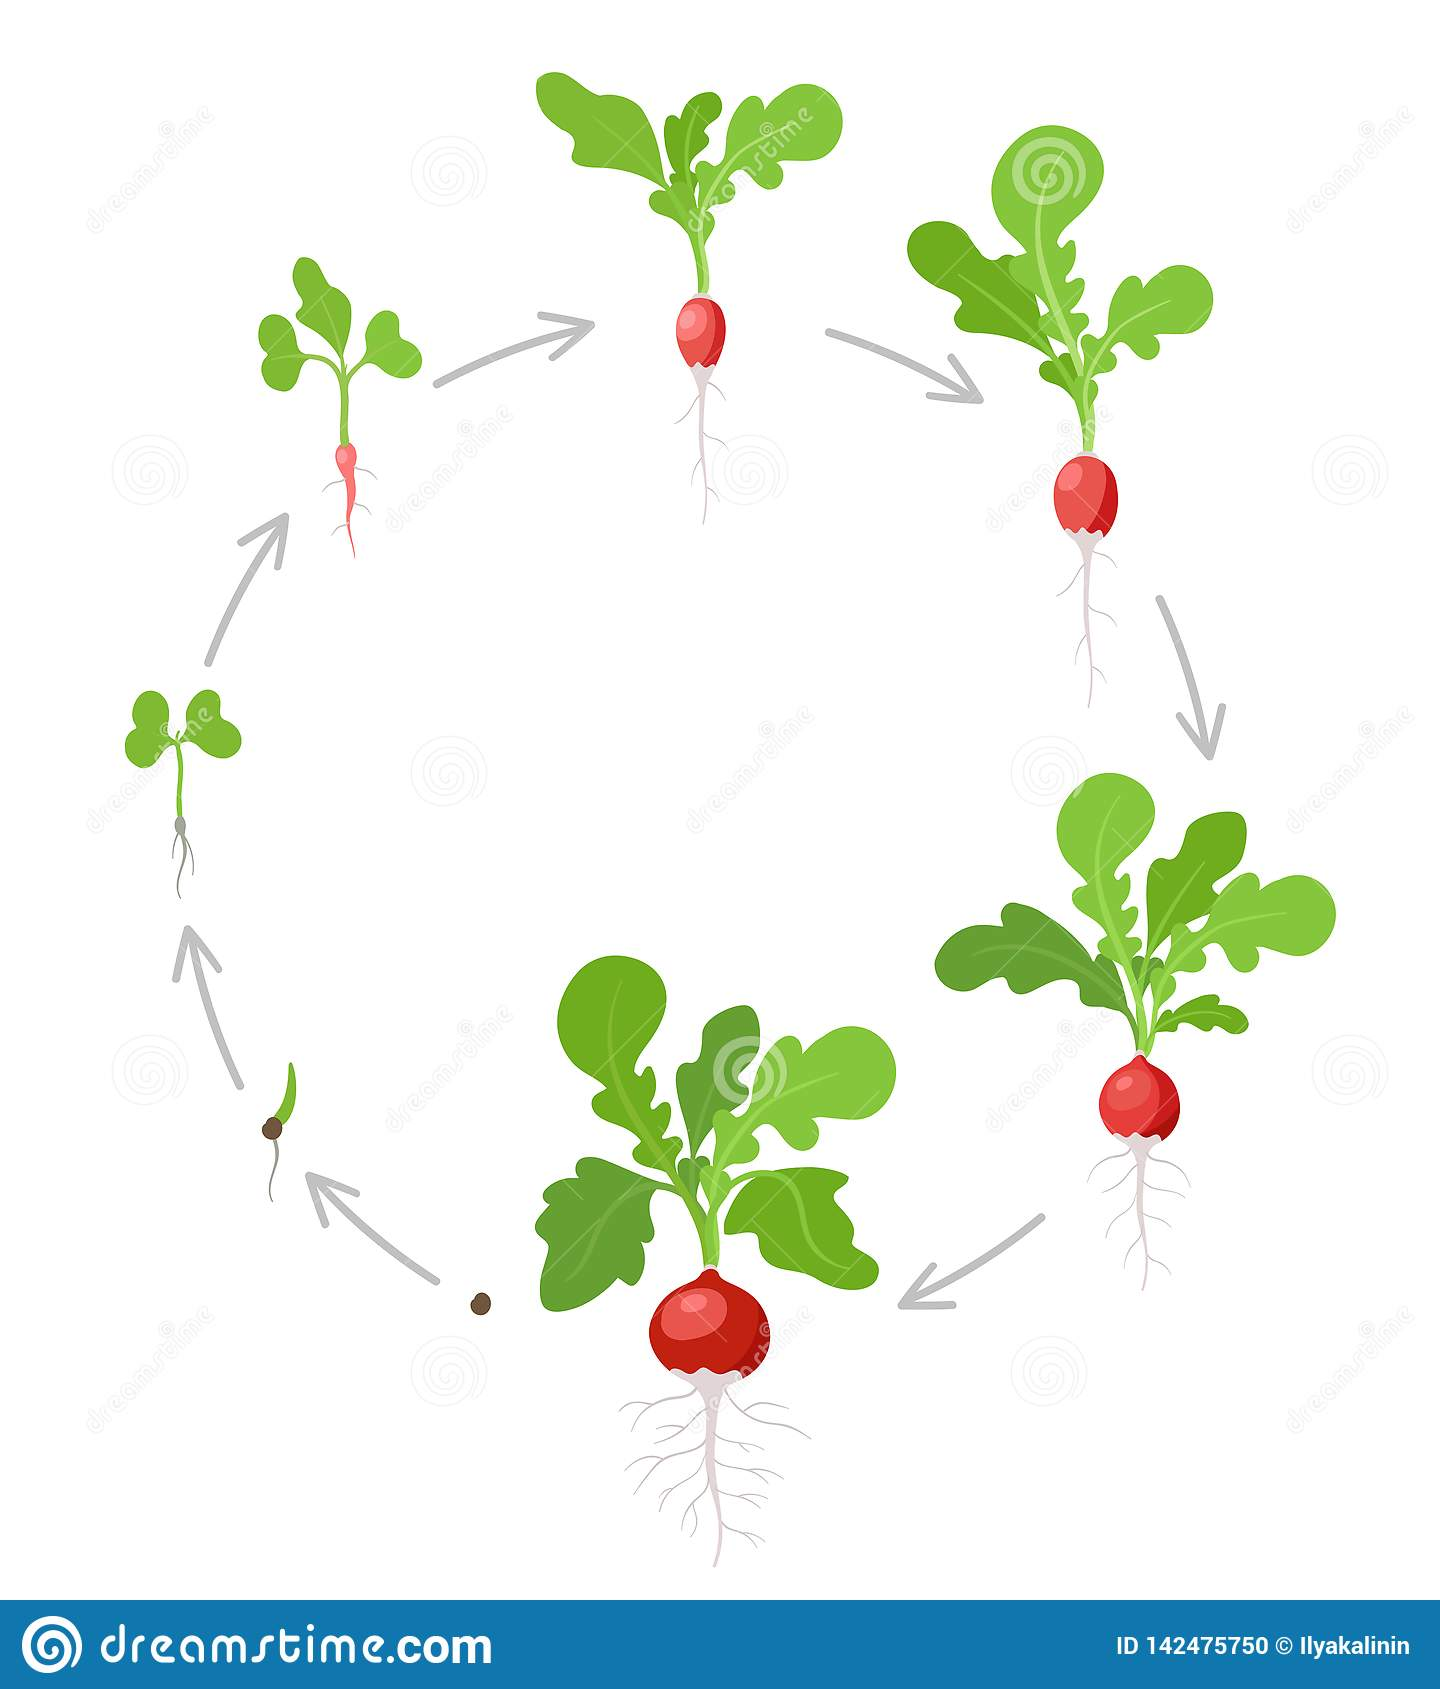 Round Growth Stages Of Radish Plant Vector Flat